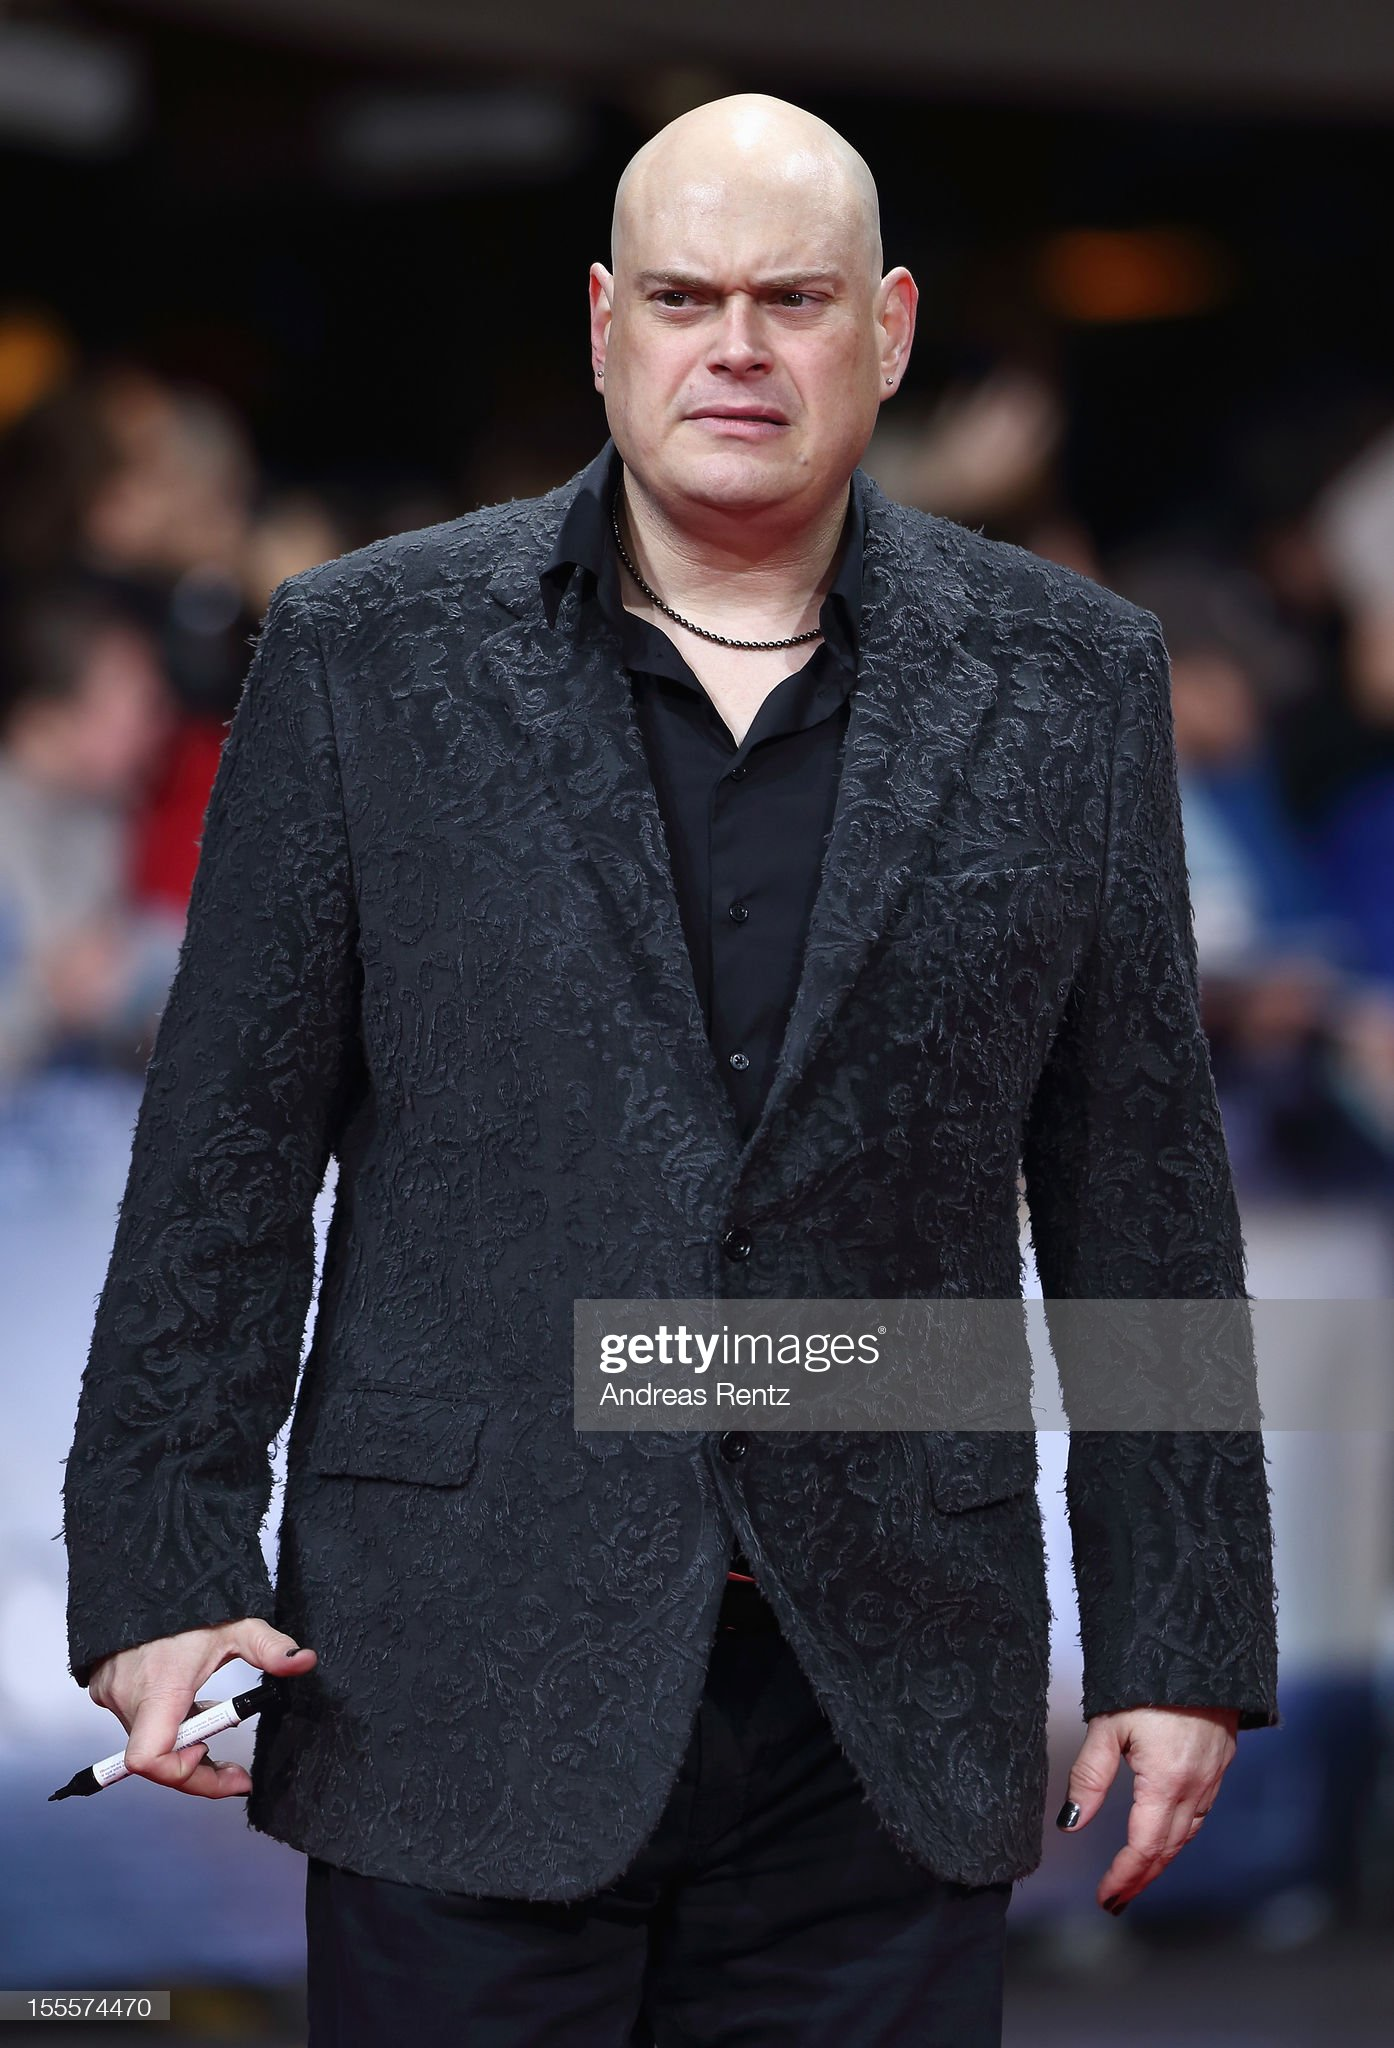 ¿Cuánto mide Lilly Wachowski / Andy Wachowski ? - Altura - Real height Director-andy-wachowski-attends-the-cloud-atlas-germany-premiere-at-picture-id155574470?s=2048x2048